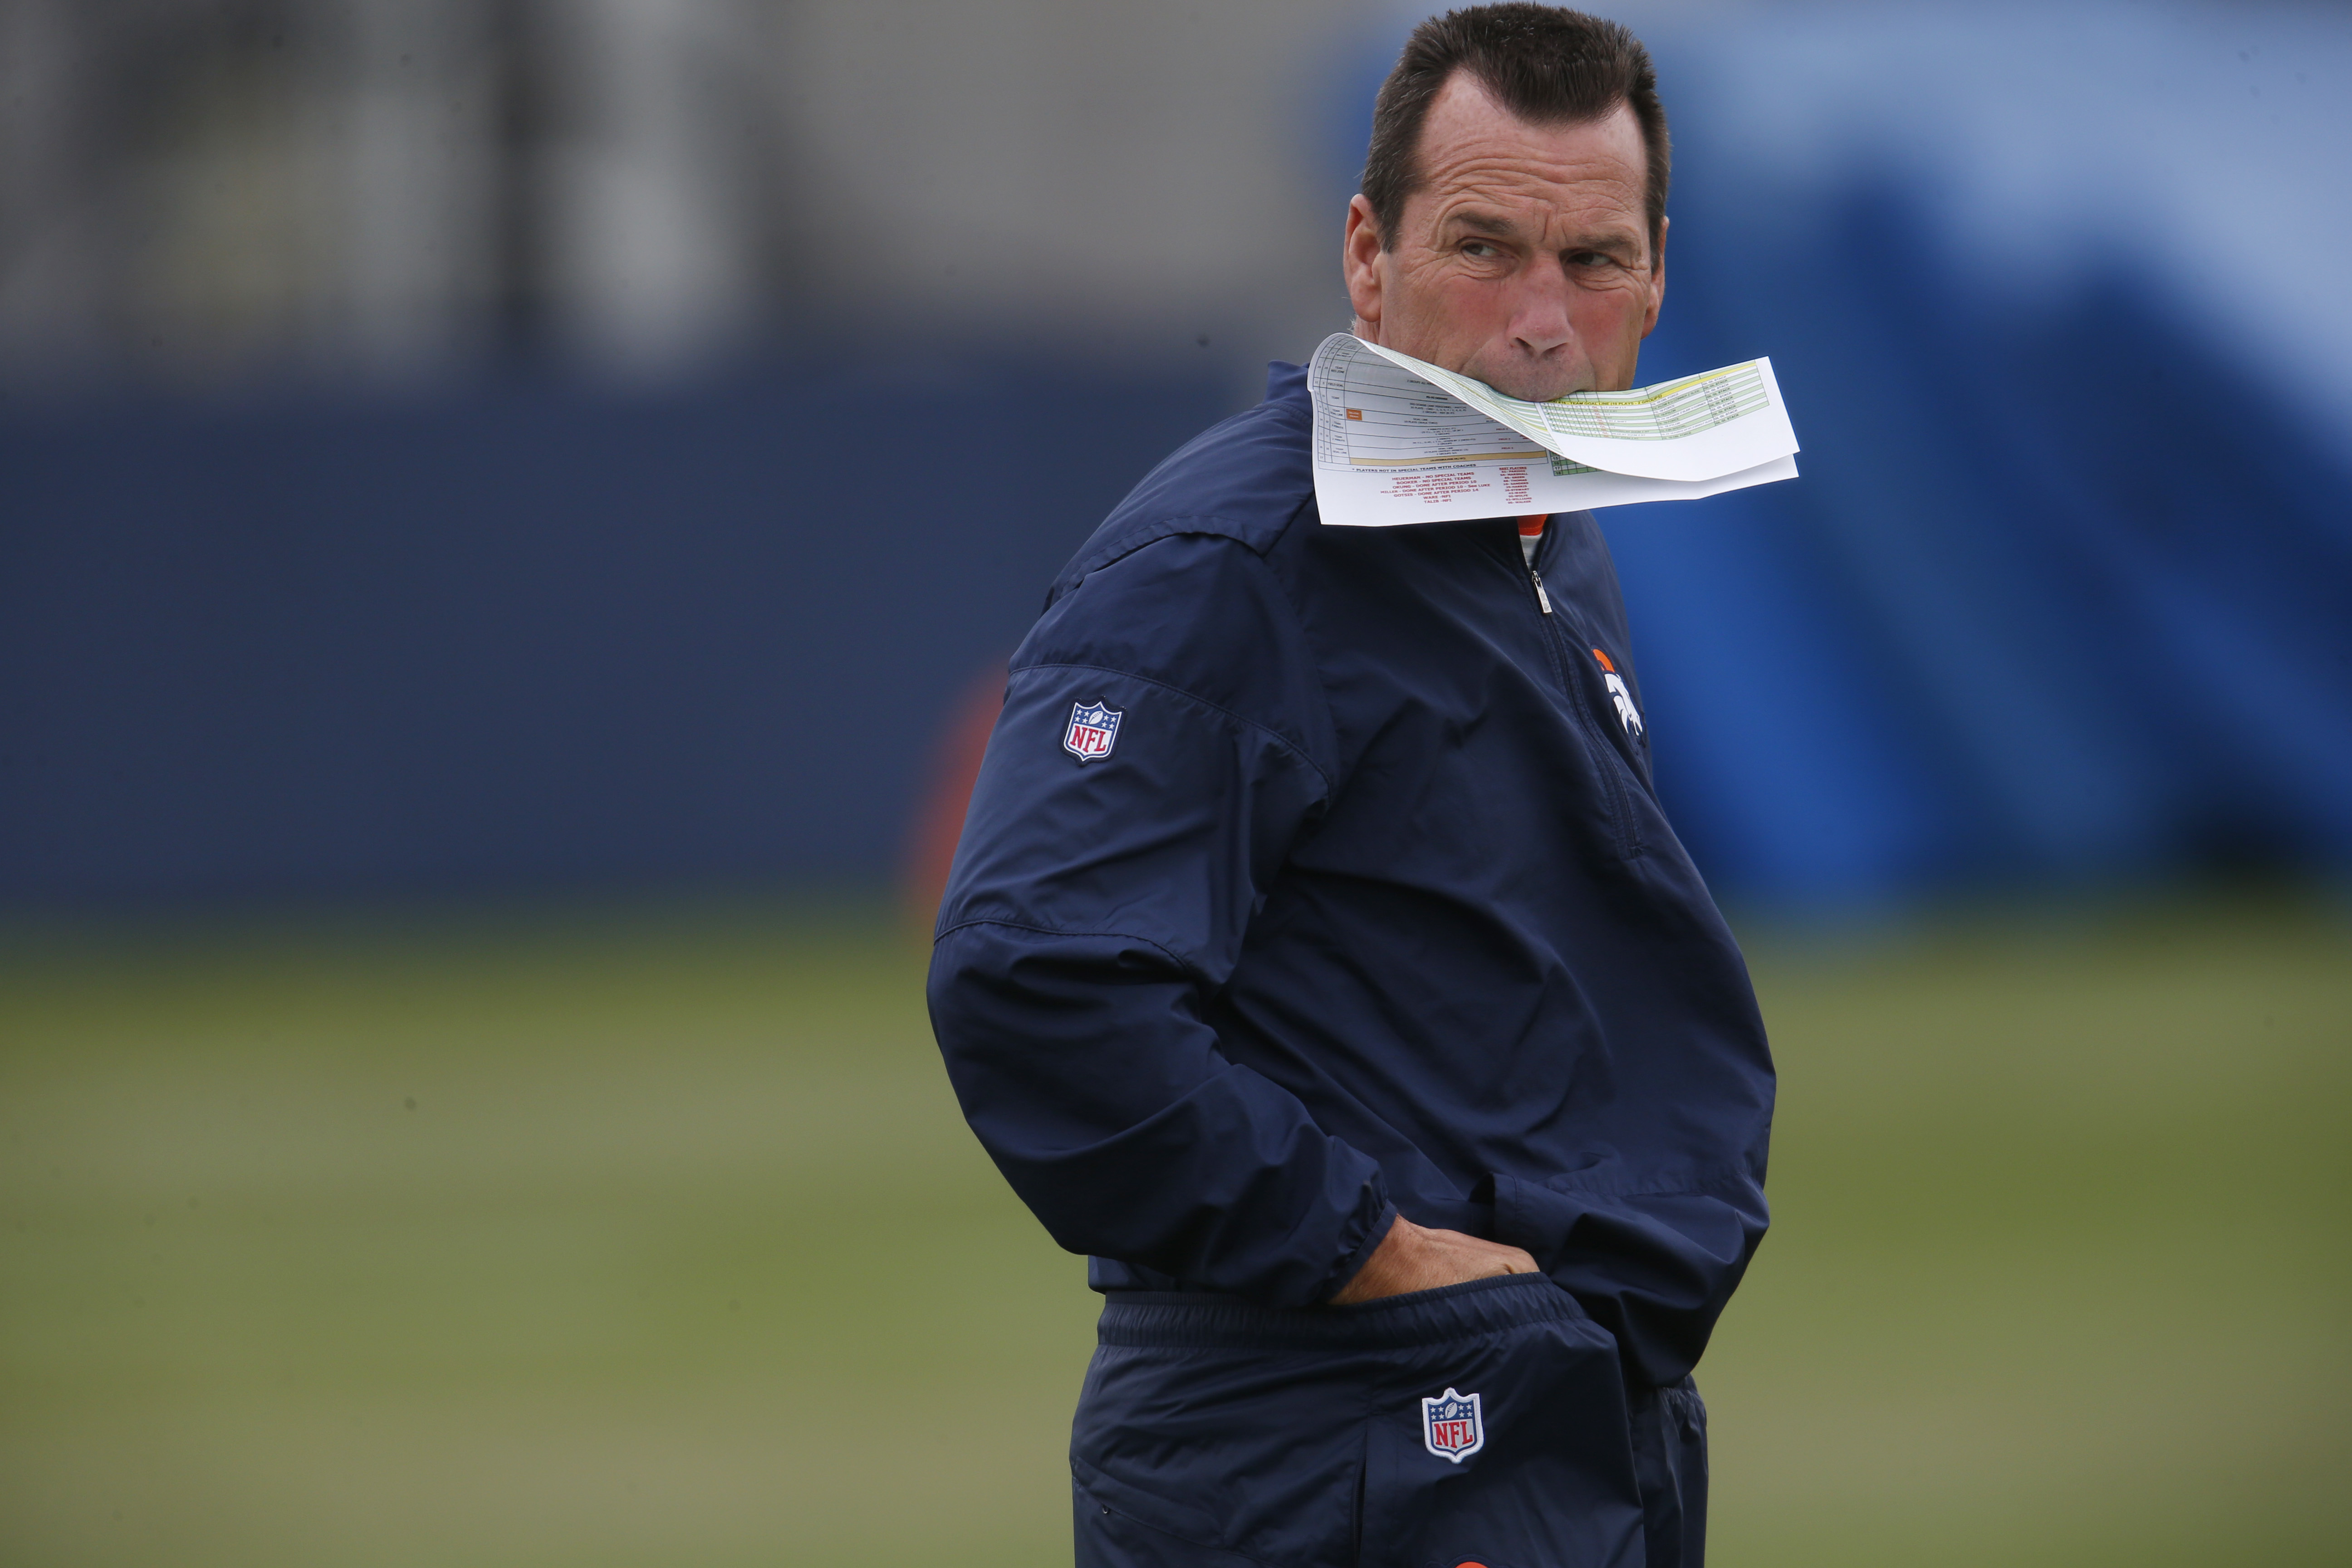 Denver Broncos head coach Gary Kubiak looks on during drills at the team's NFL football training camp Friday, Aug. 5, 2016 in Englewood, Colo. (AP Photo/David Zalubowski)